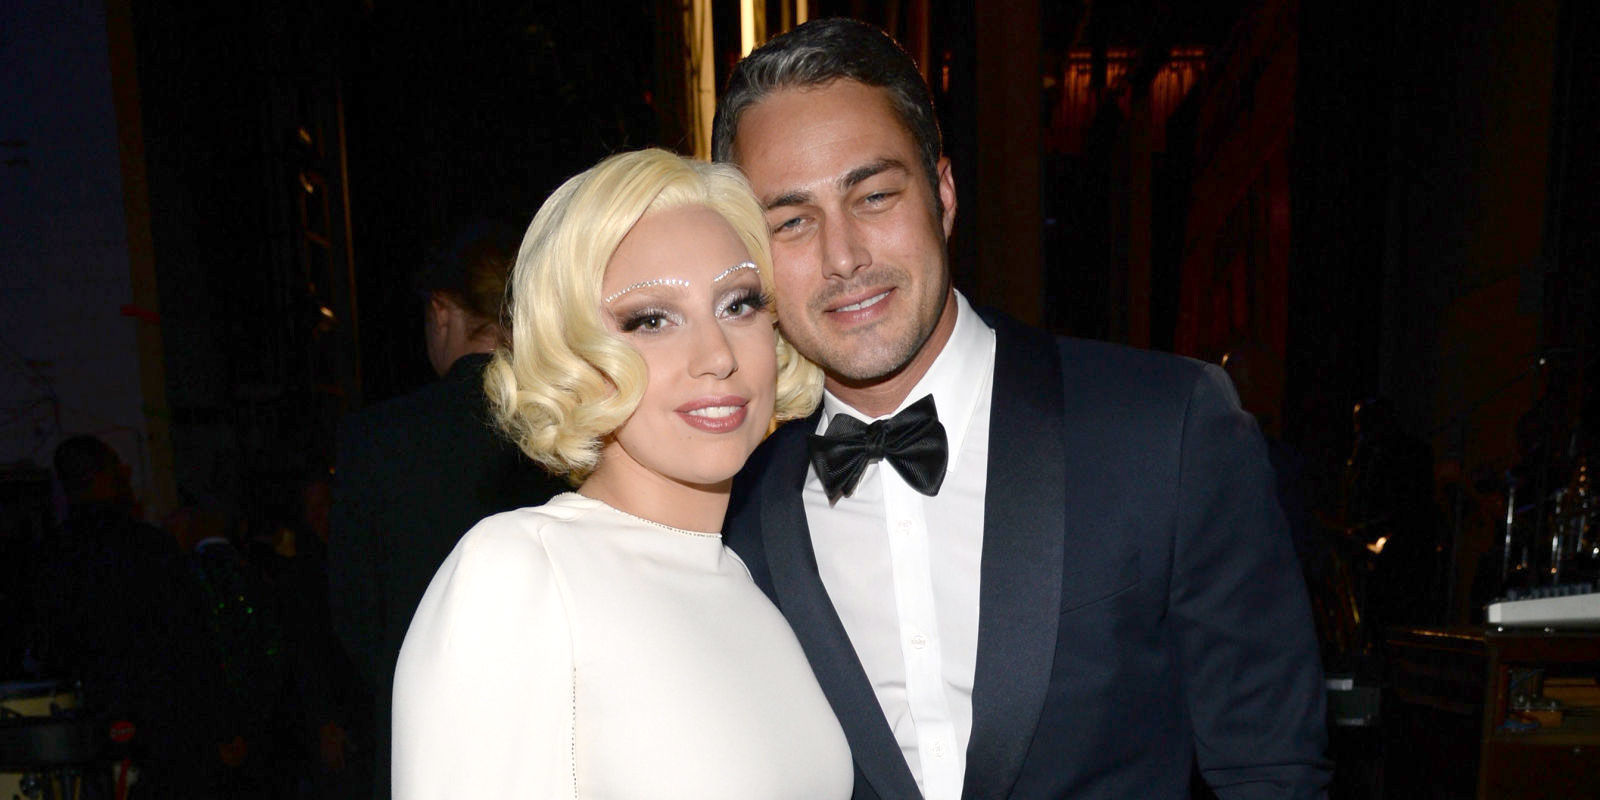 Did Lady Gaga Get Secret-Married?